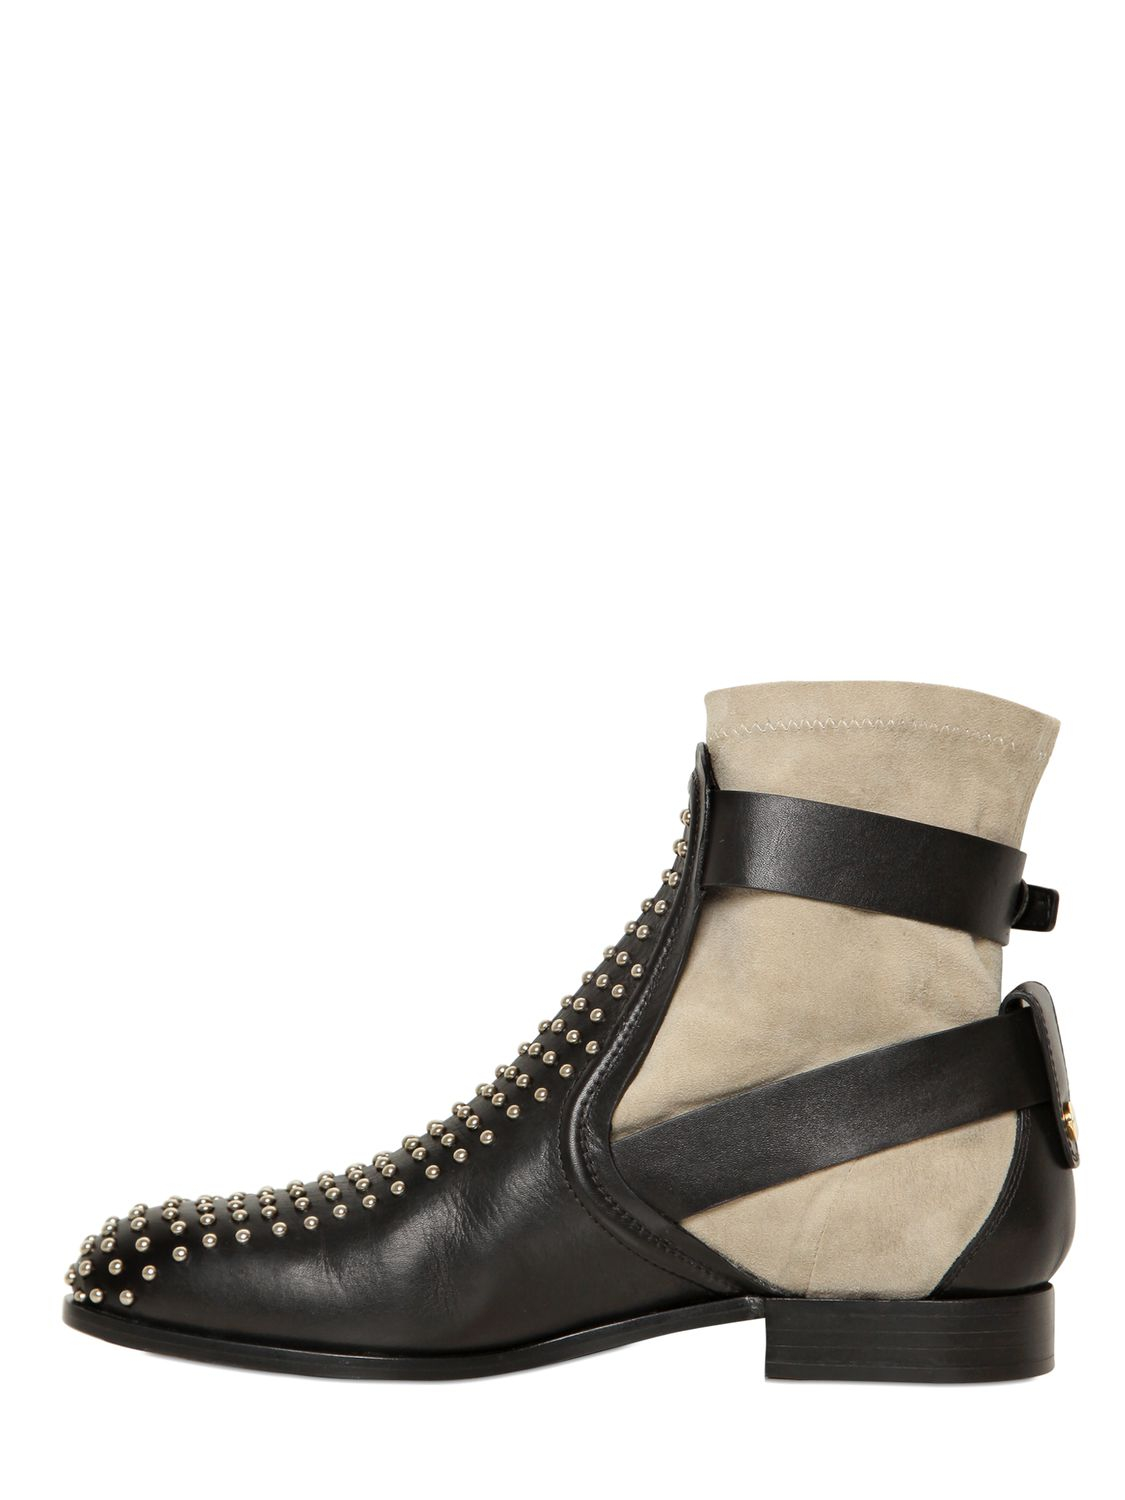 Lyst Chlo 233 30mm Studded Calfskin Boots In Black